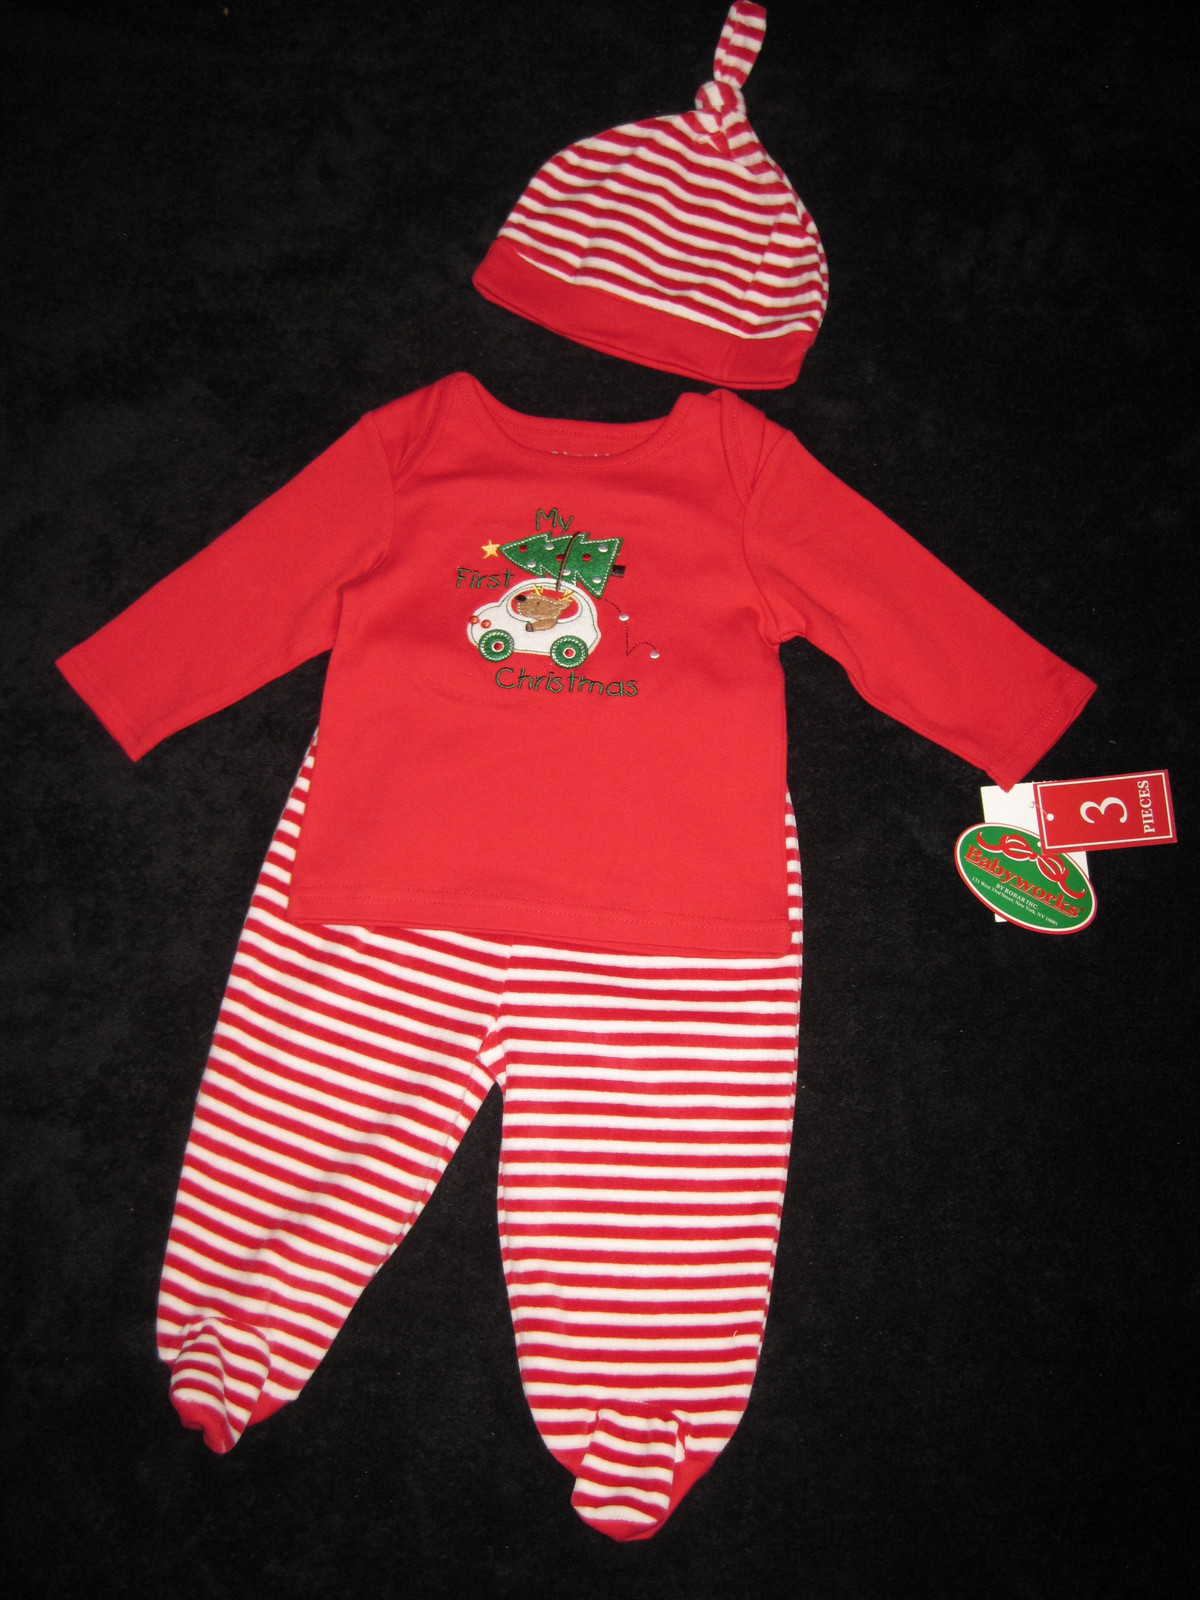 BOYS 3-6 MONTHS - Baby Works - My First Christmas HAT, FOOTED PANTS & SHIRT SET